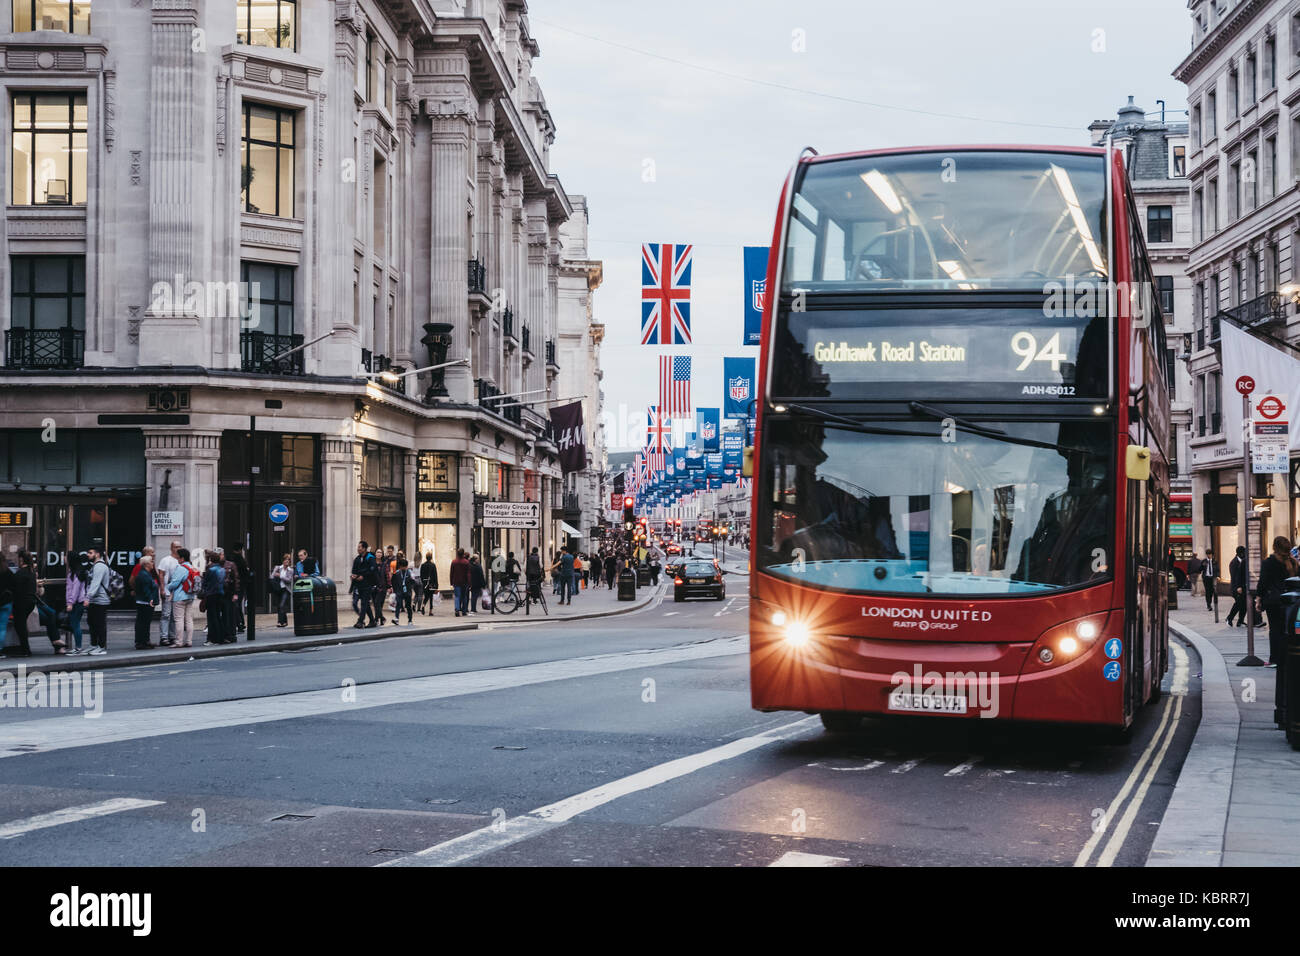 Red double-decker bus on Regent Street, London. The street is decorated with NFL flags to celebrate the event and - Stock Image